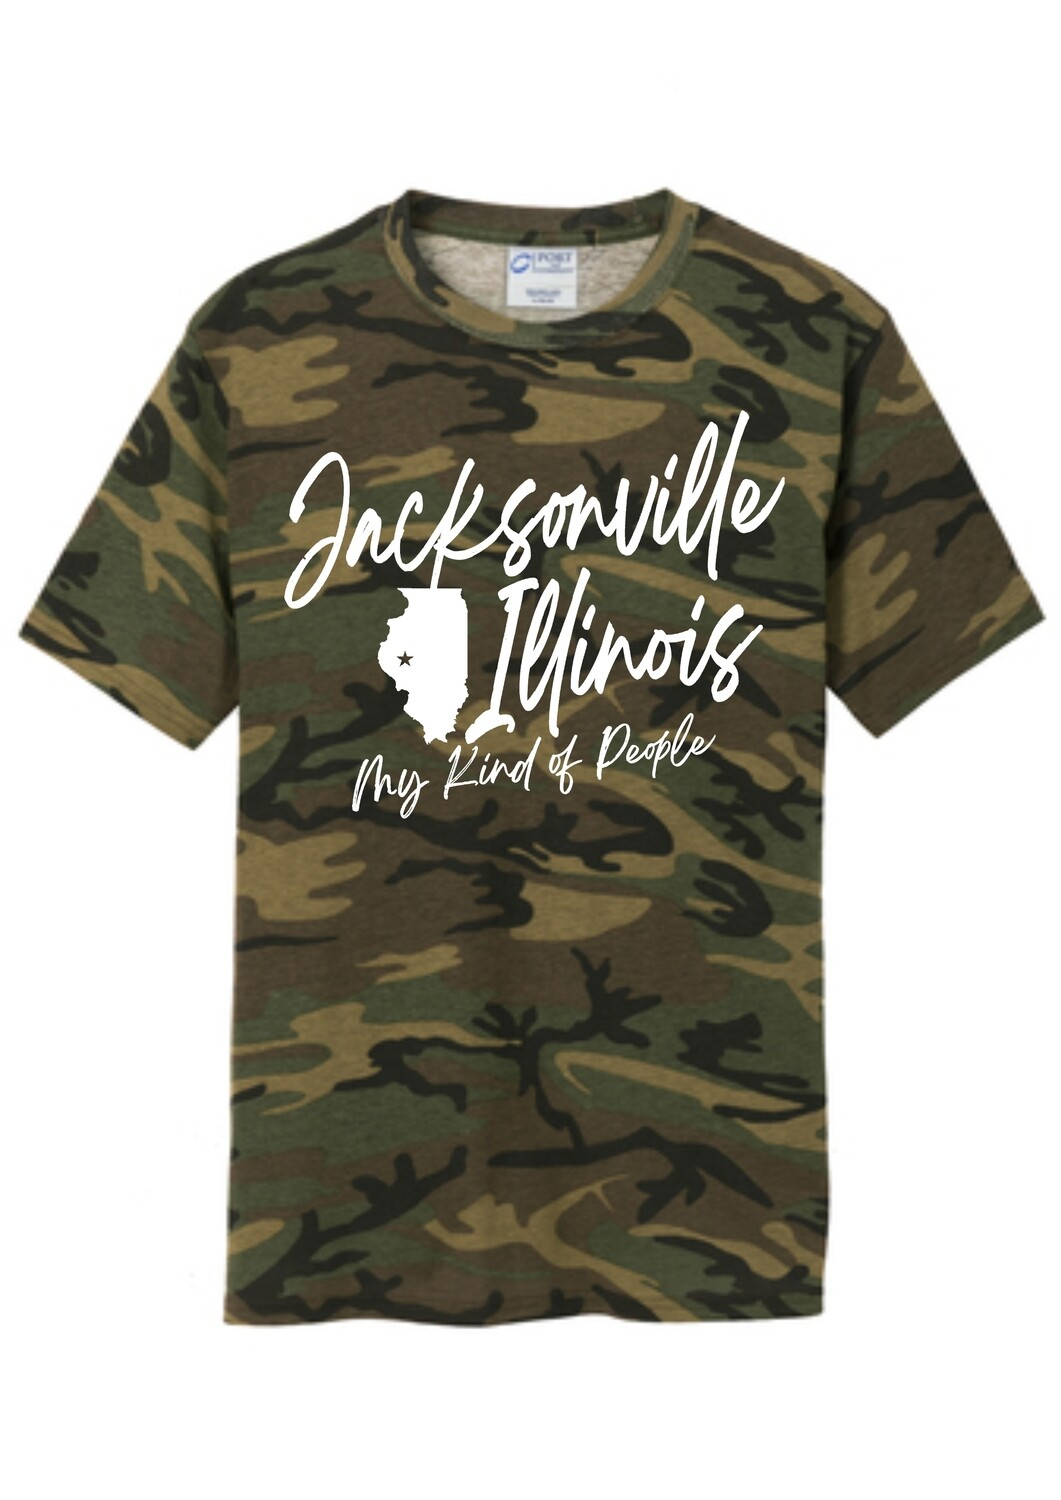 PC54 ADULT CAMO T-SHIRT / MY PEOPLE